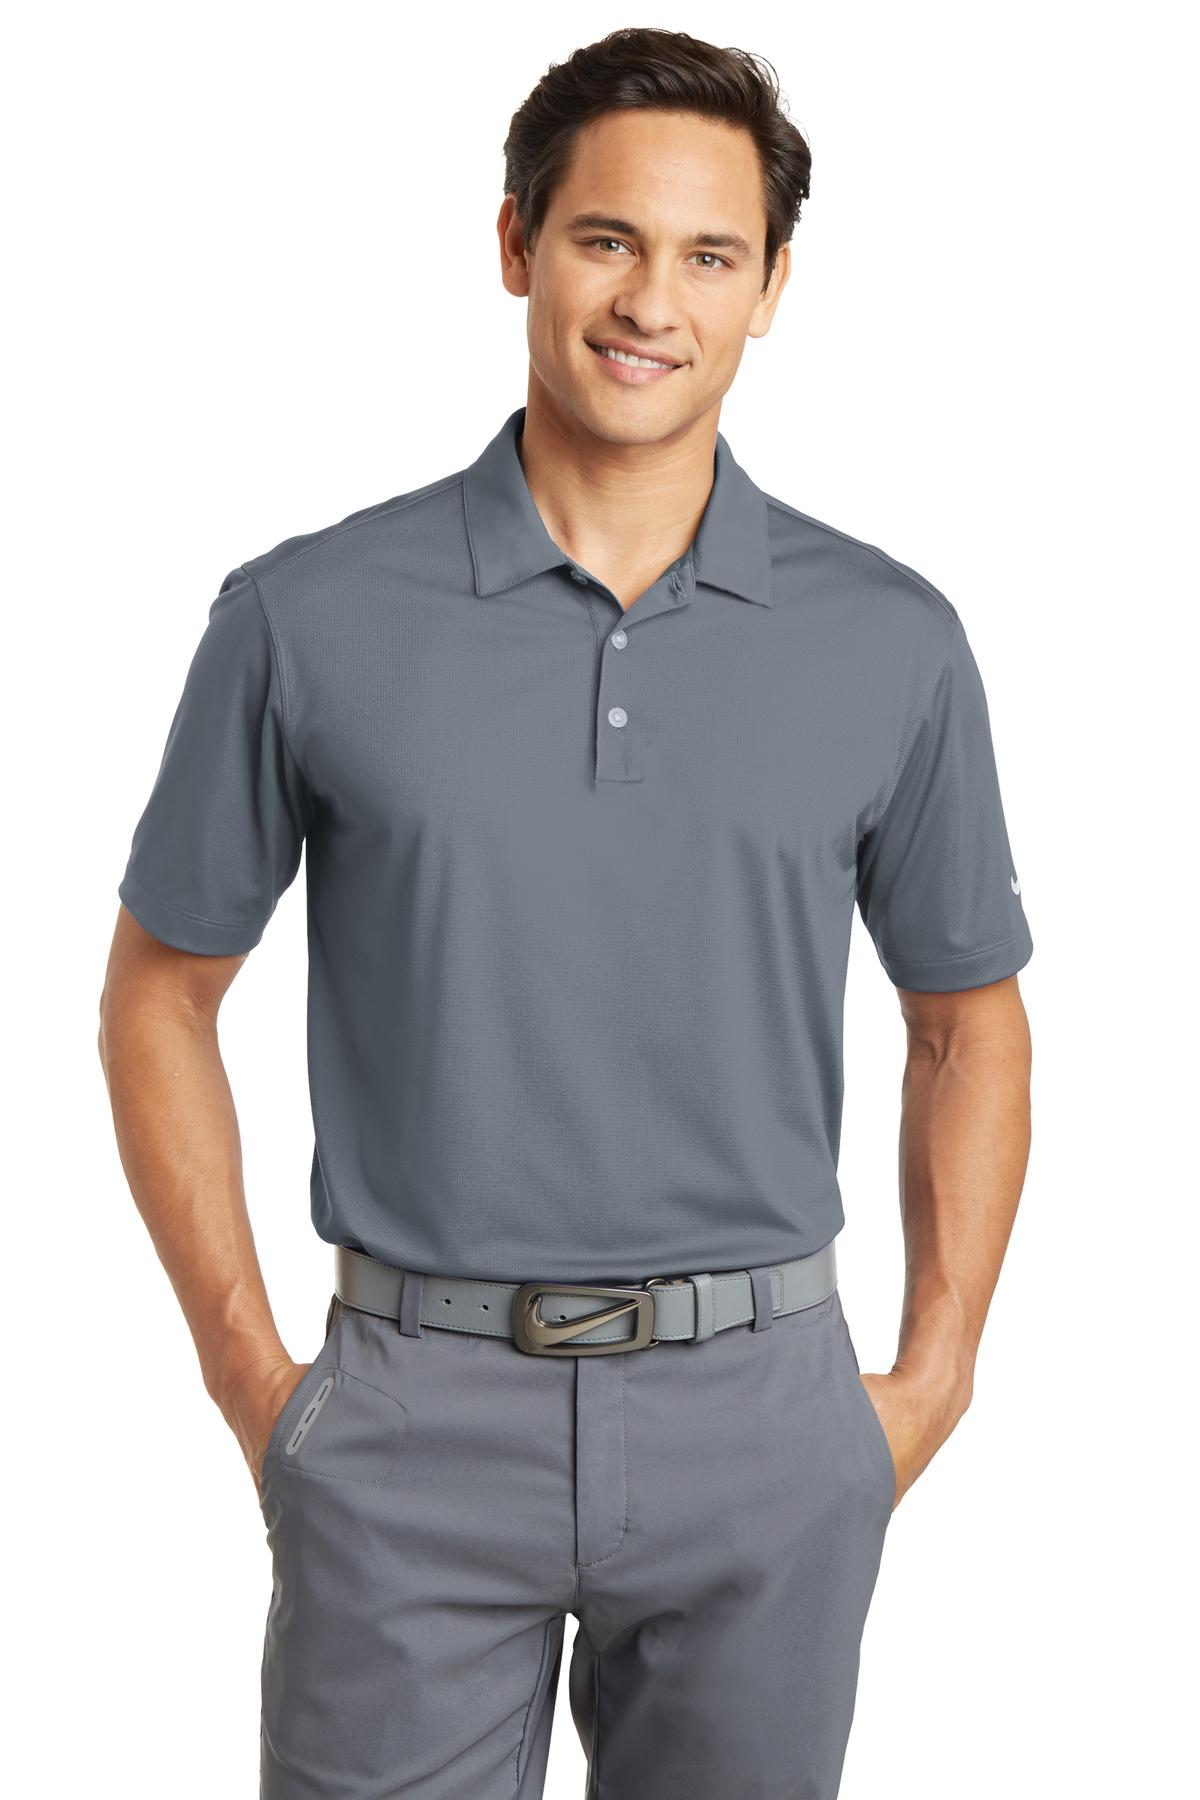 Nike Dri-FIT Vertical Mesh Polo. 637167 - Cool Grey